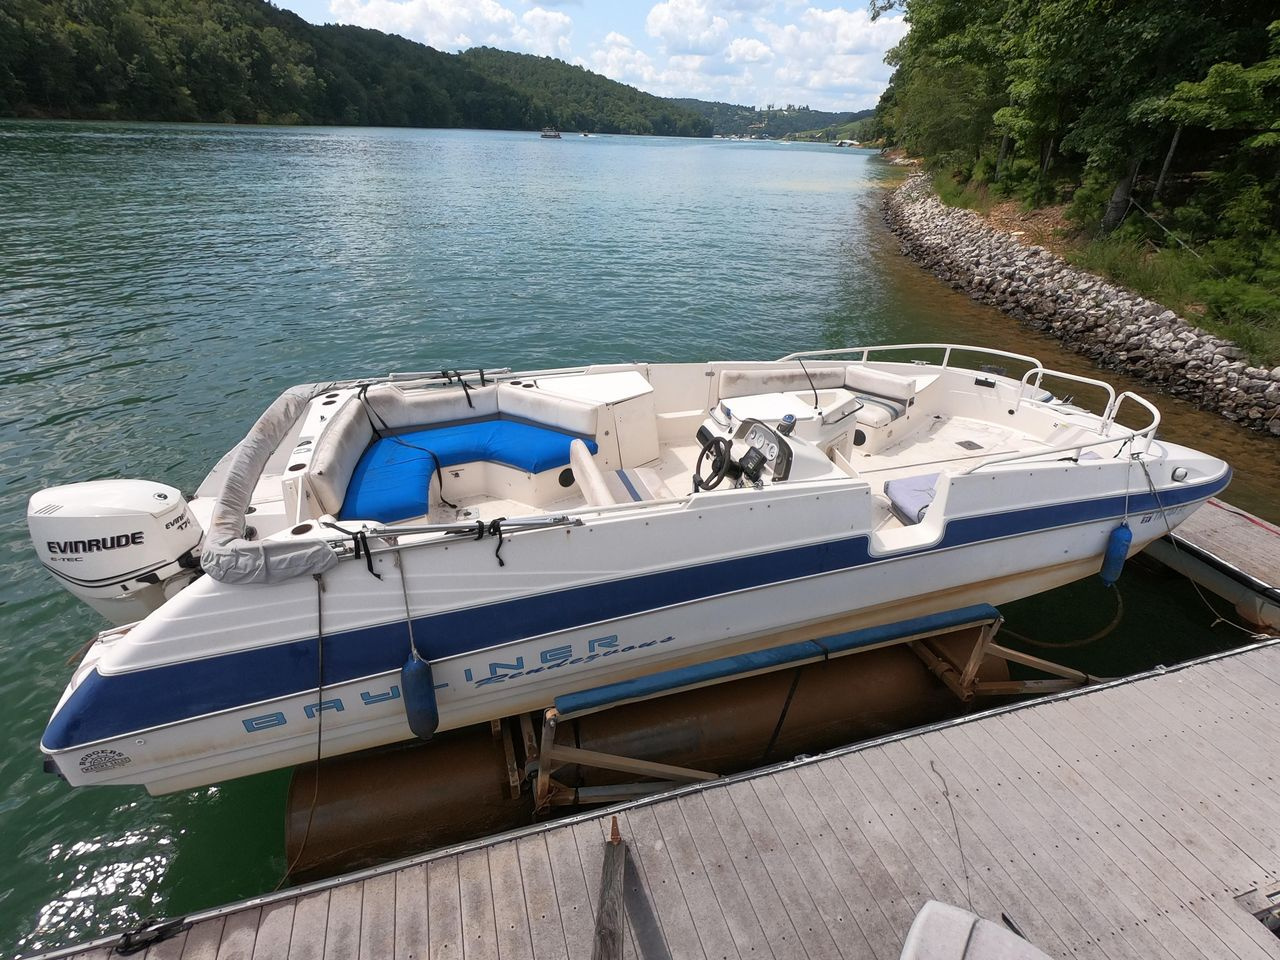 1994 Used Bayliner Rendezvous Power Catamaran Boat For Sale